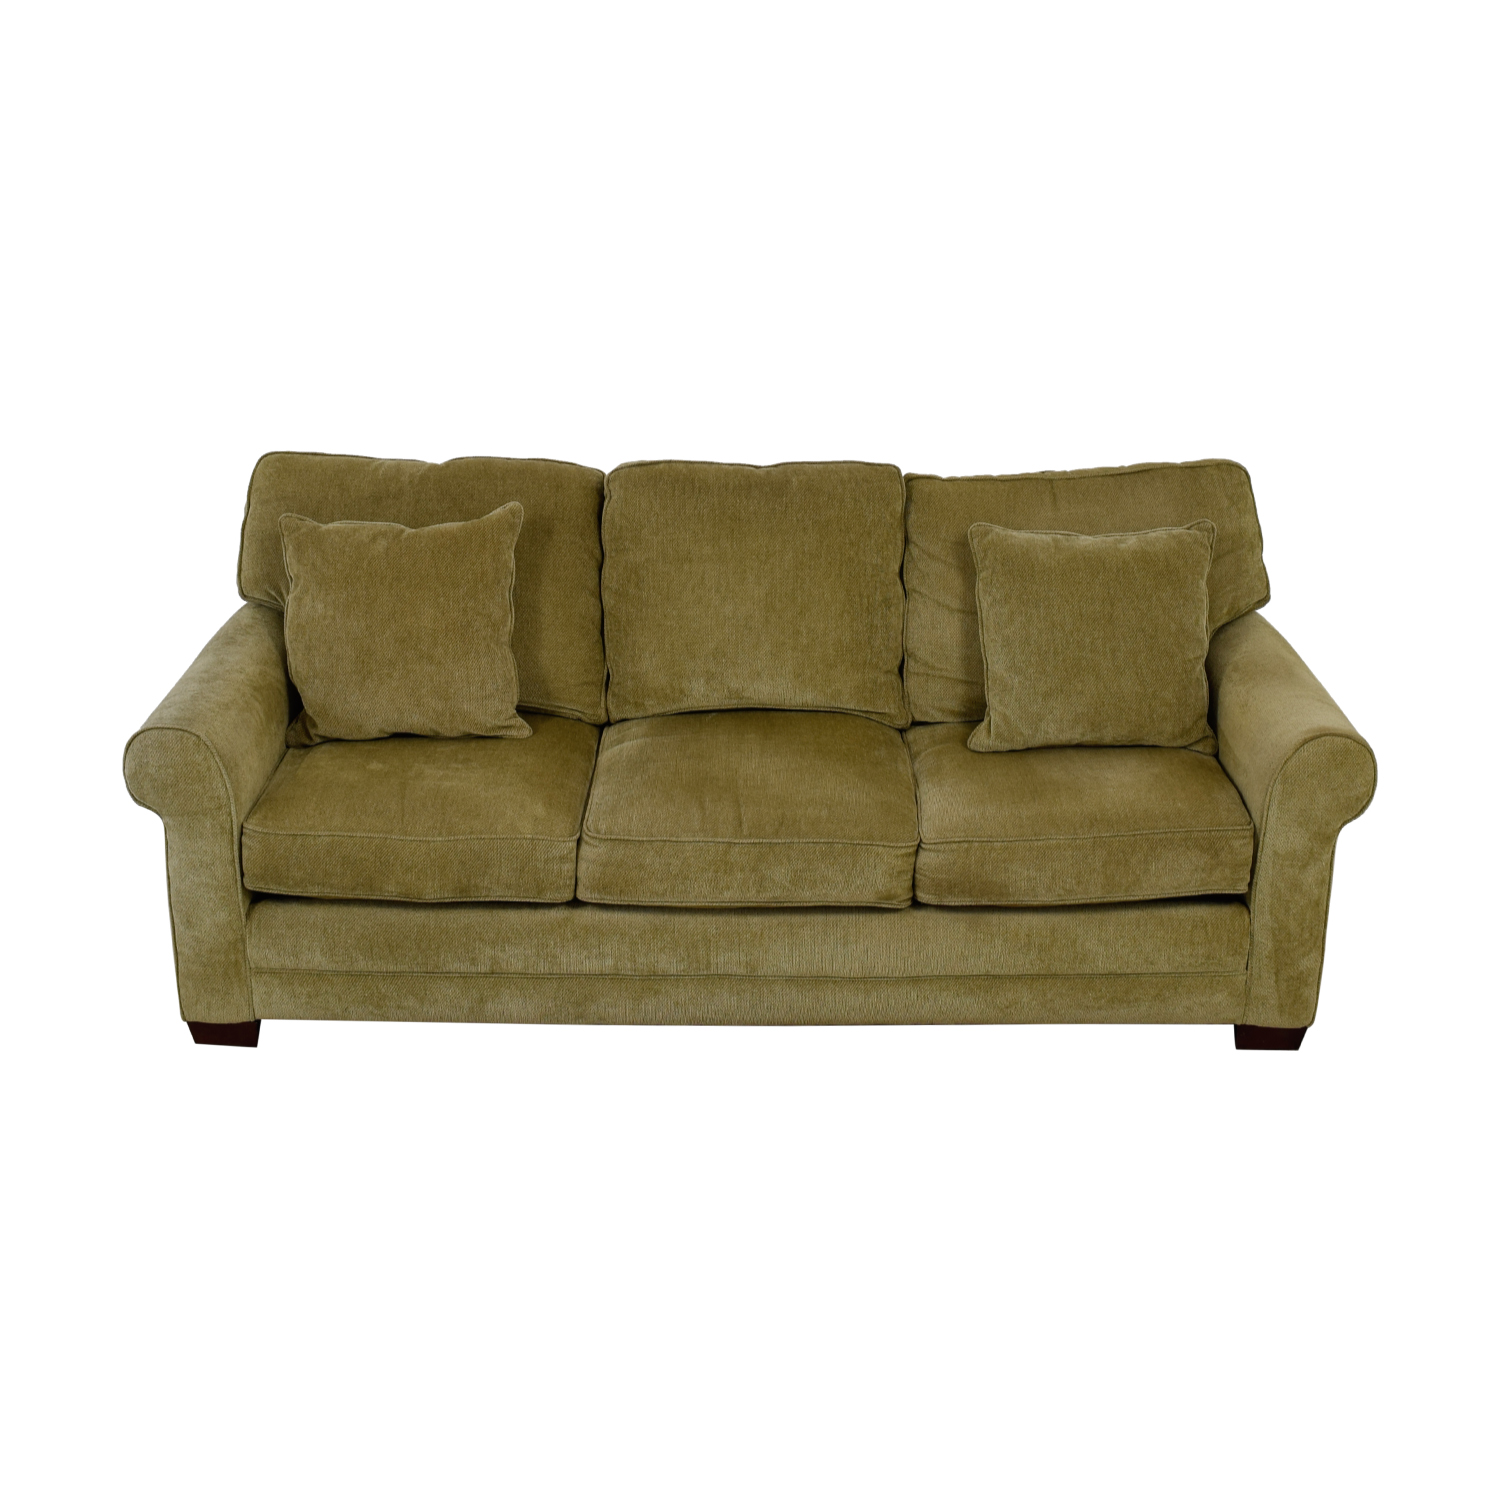 Raymour and Flanigan Raymour & Flanigan Grey Three-Cushion Couch coupon